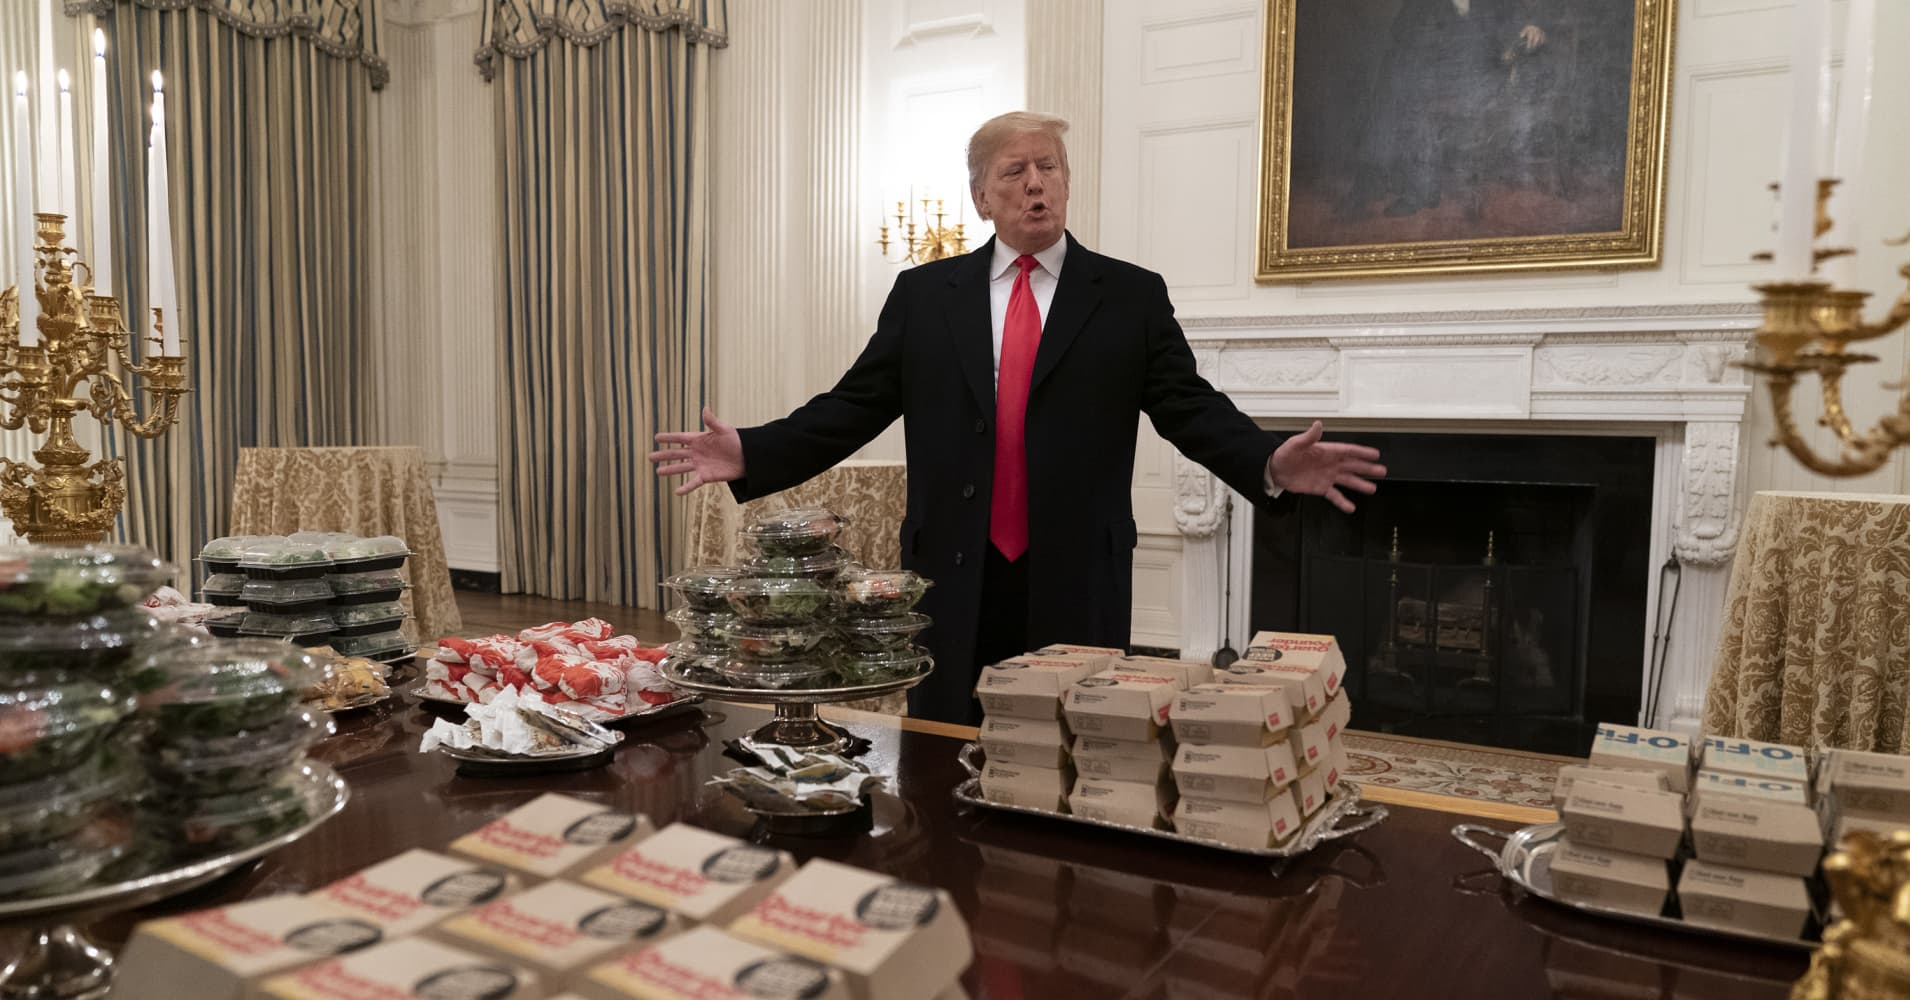 Trump White House Clemson dinner: Successful people who eat fast food